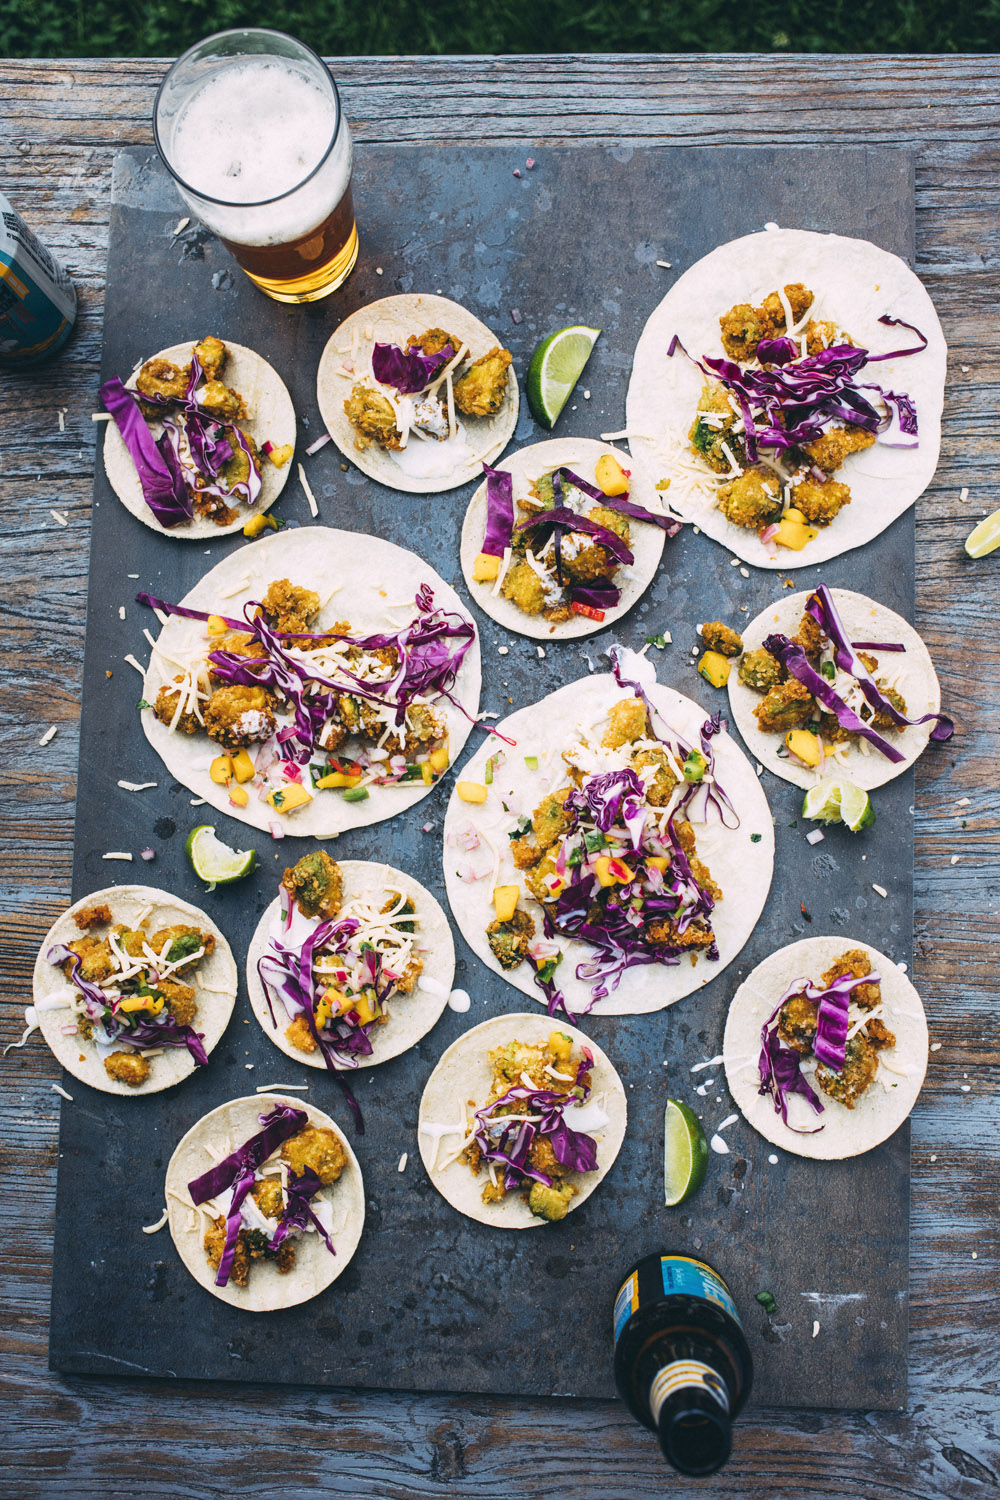 FoodManBQueFried_Avocado_Tacos_2104.jpg